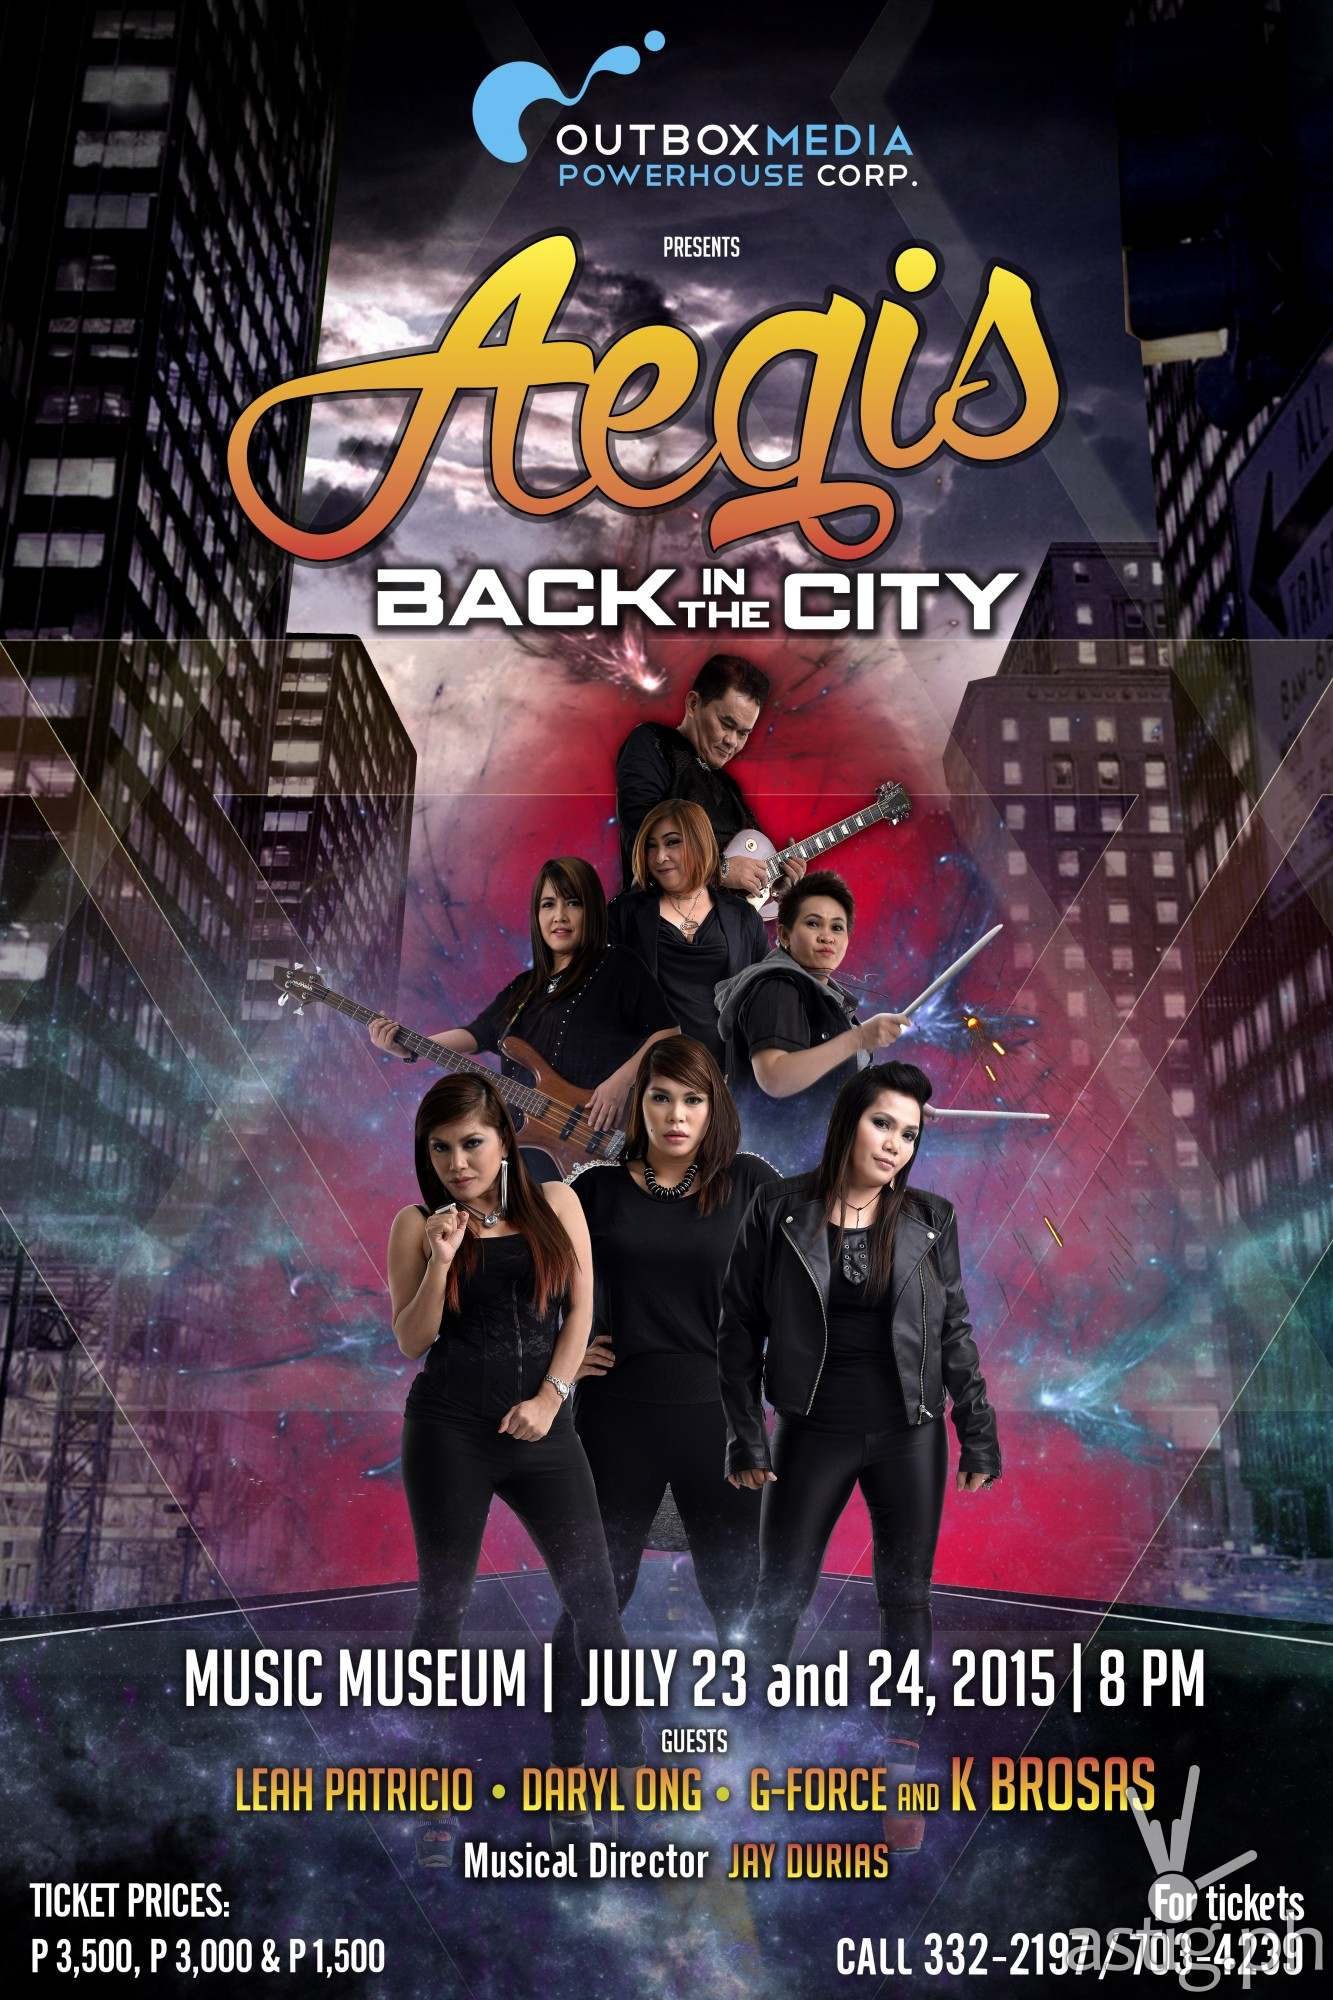 AEGIS Back in the City poster